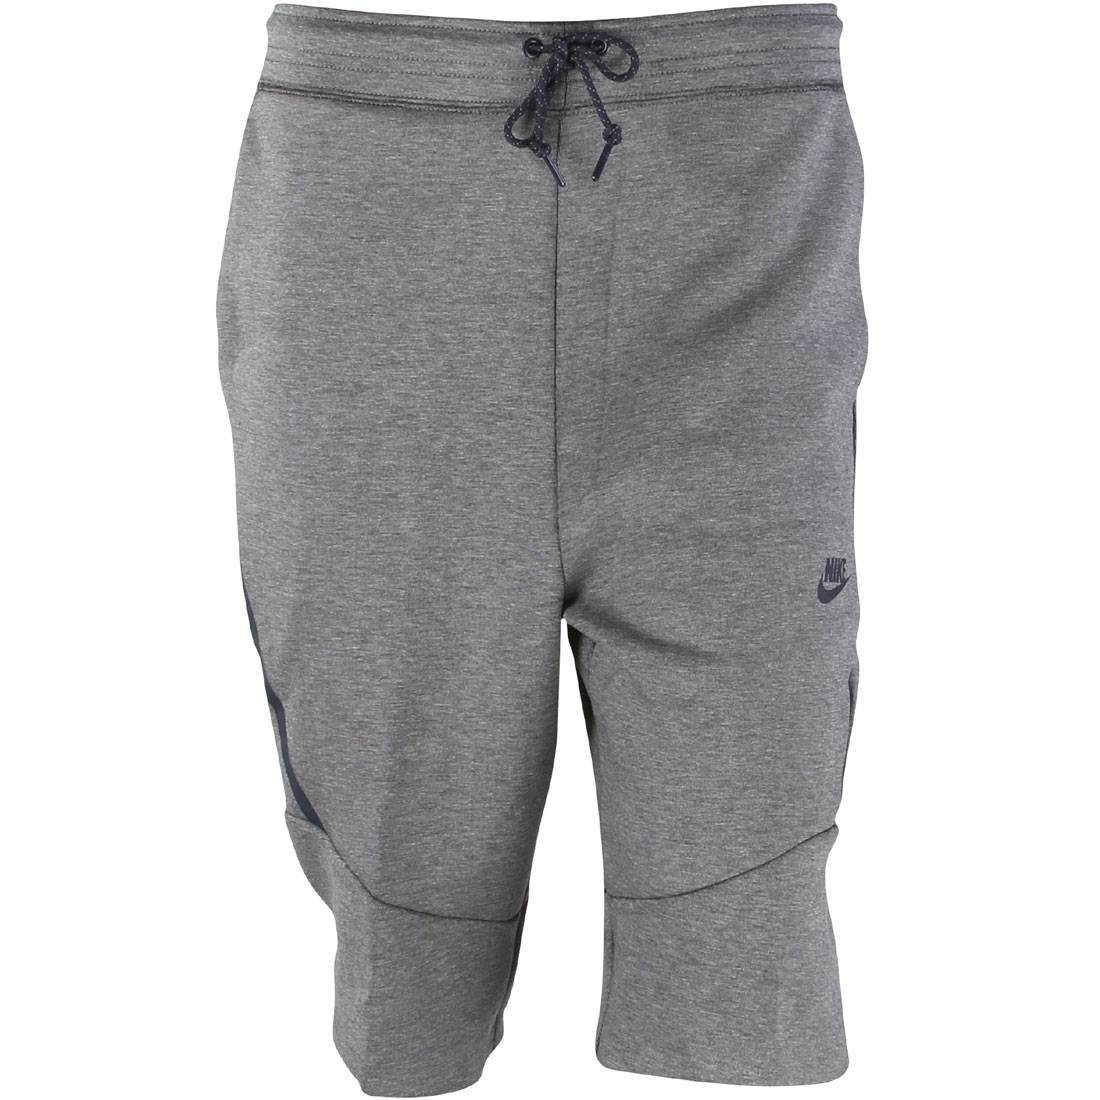 727357 091 nike men tech fleece 2 0 shorts carbon. Black Bedroom Furniture Sets. Home Design Ideas